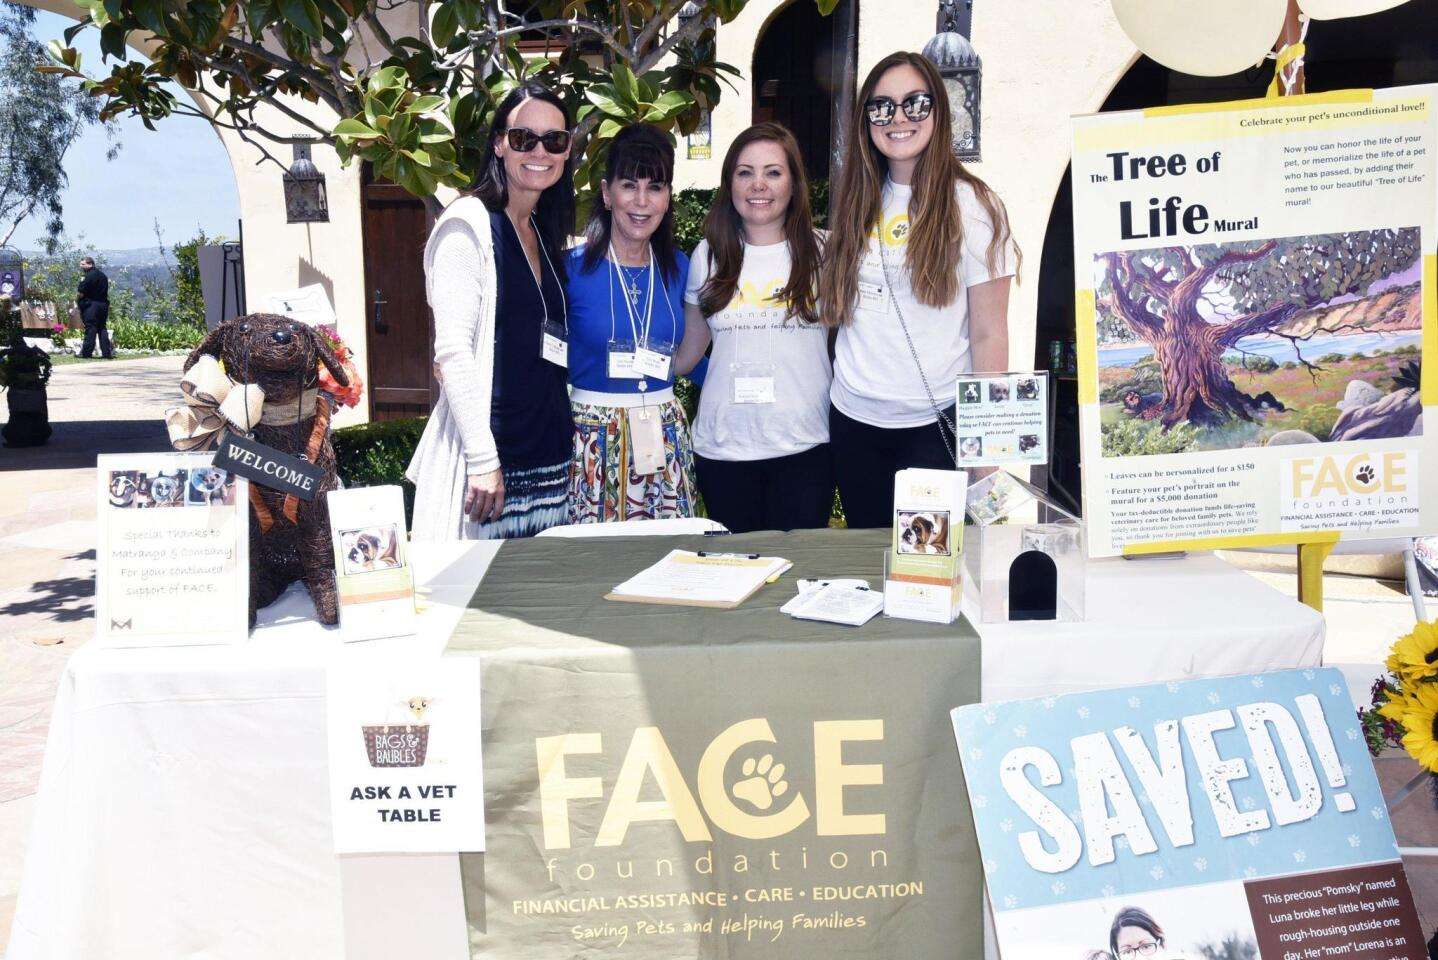 FACE Foundation board member/veterinary neurologist Dr. Tammy Stevenson, President/Co-founder/hostess Cini Robb, Event Coordinator Rachel Rothstein, Events and Administrative Assistant Kate Moorhouse